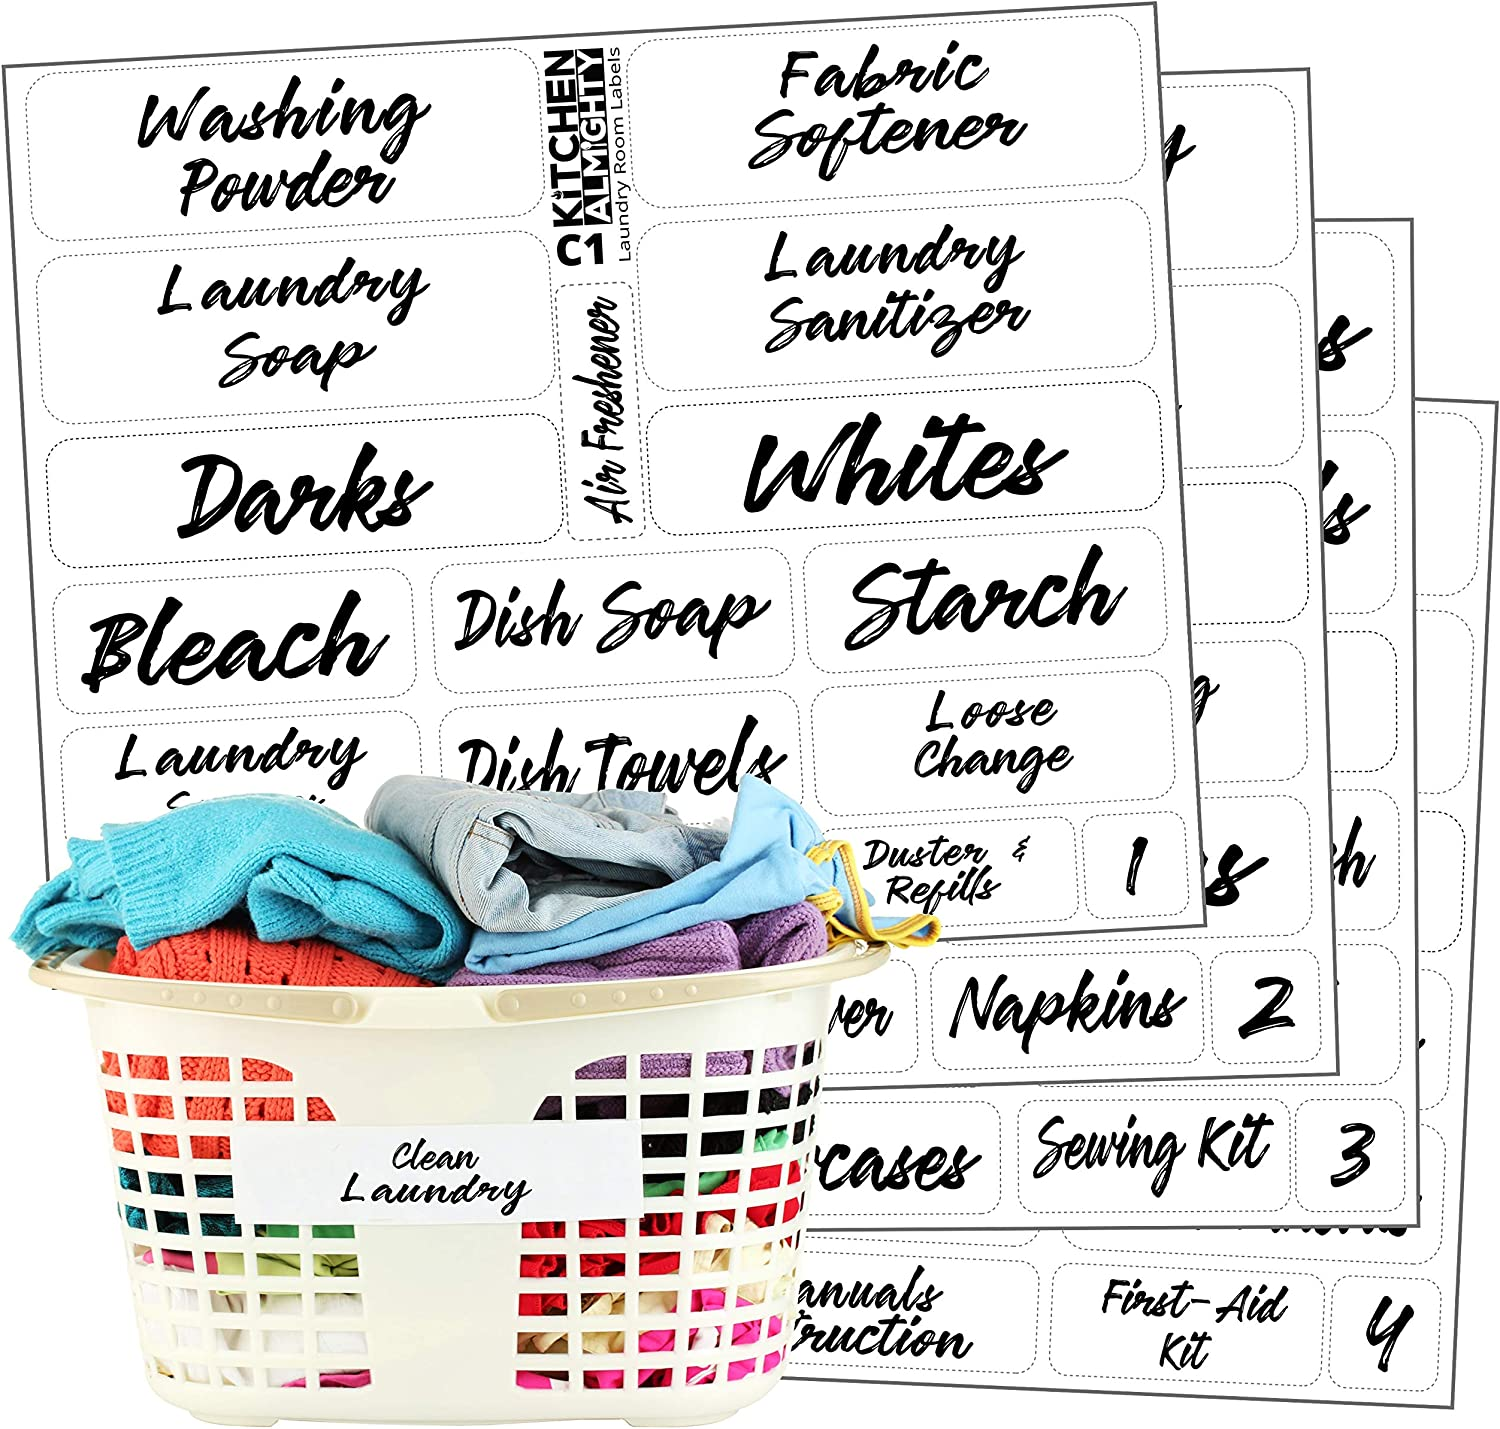 Laundry Room Organization Clear Labels: 85 Classy Gloss Preprinted Water Resistant Label Set to Organize Laundry w/Extra Write-on Stickers